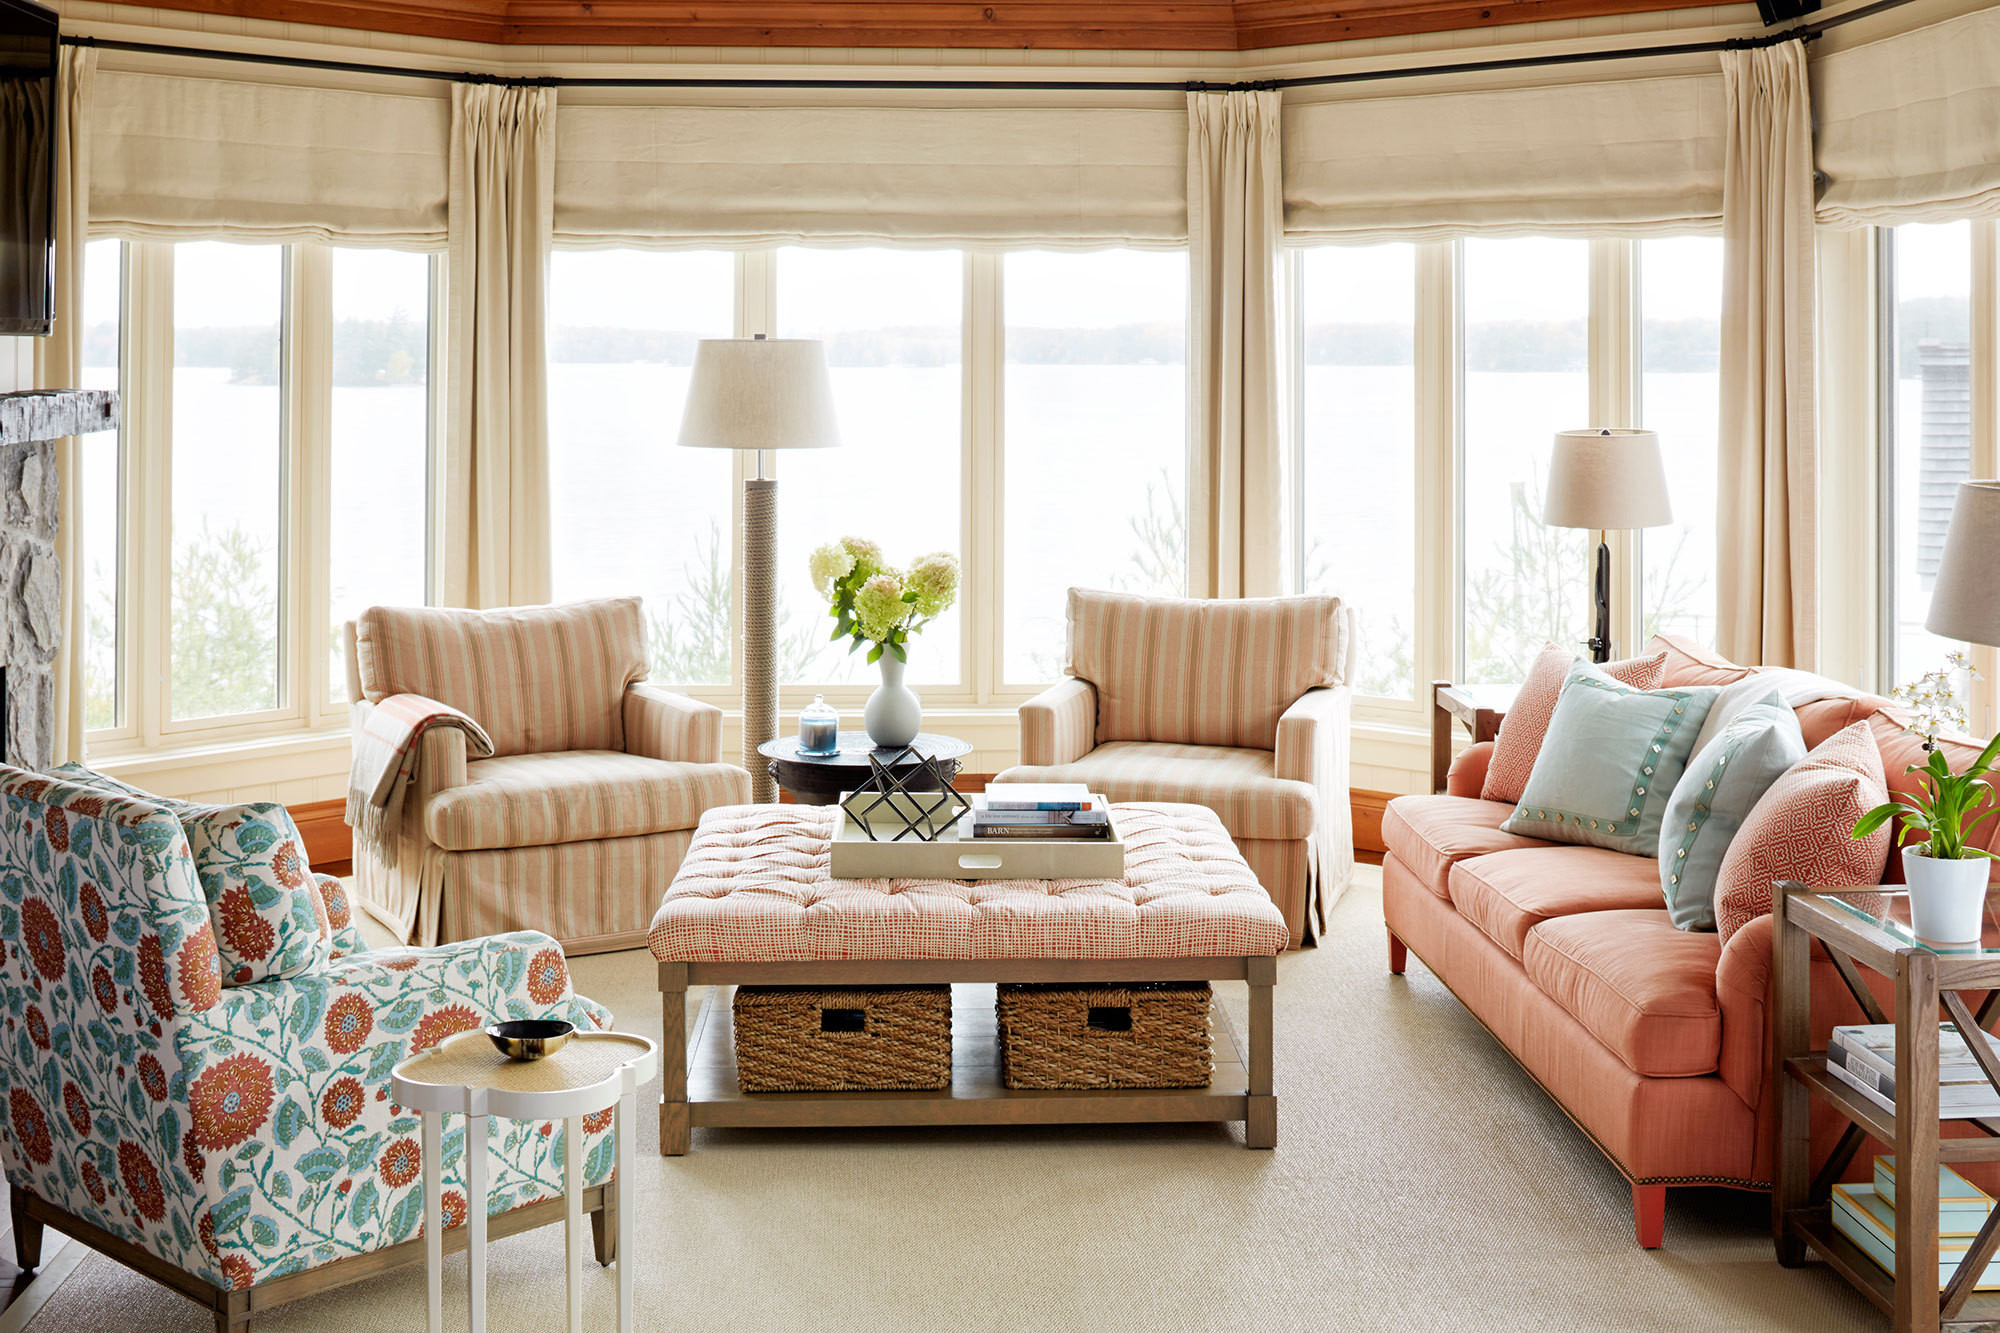 In the family room, overlooking Lake Joseph, upholstered furnishings and understated hues create a mood of ease and comfort.